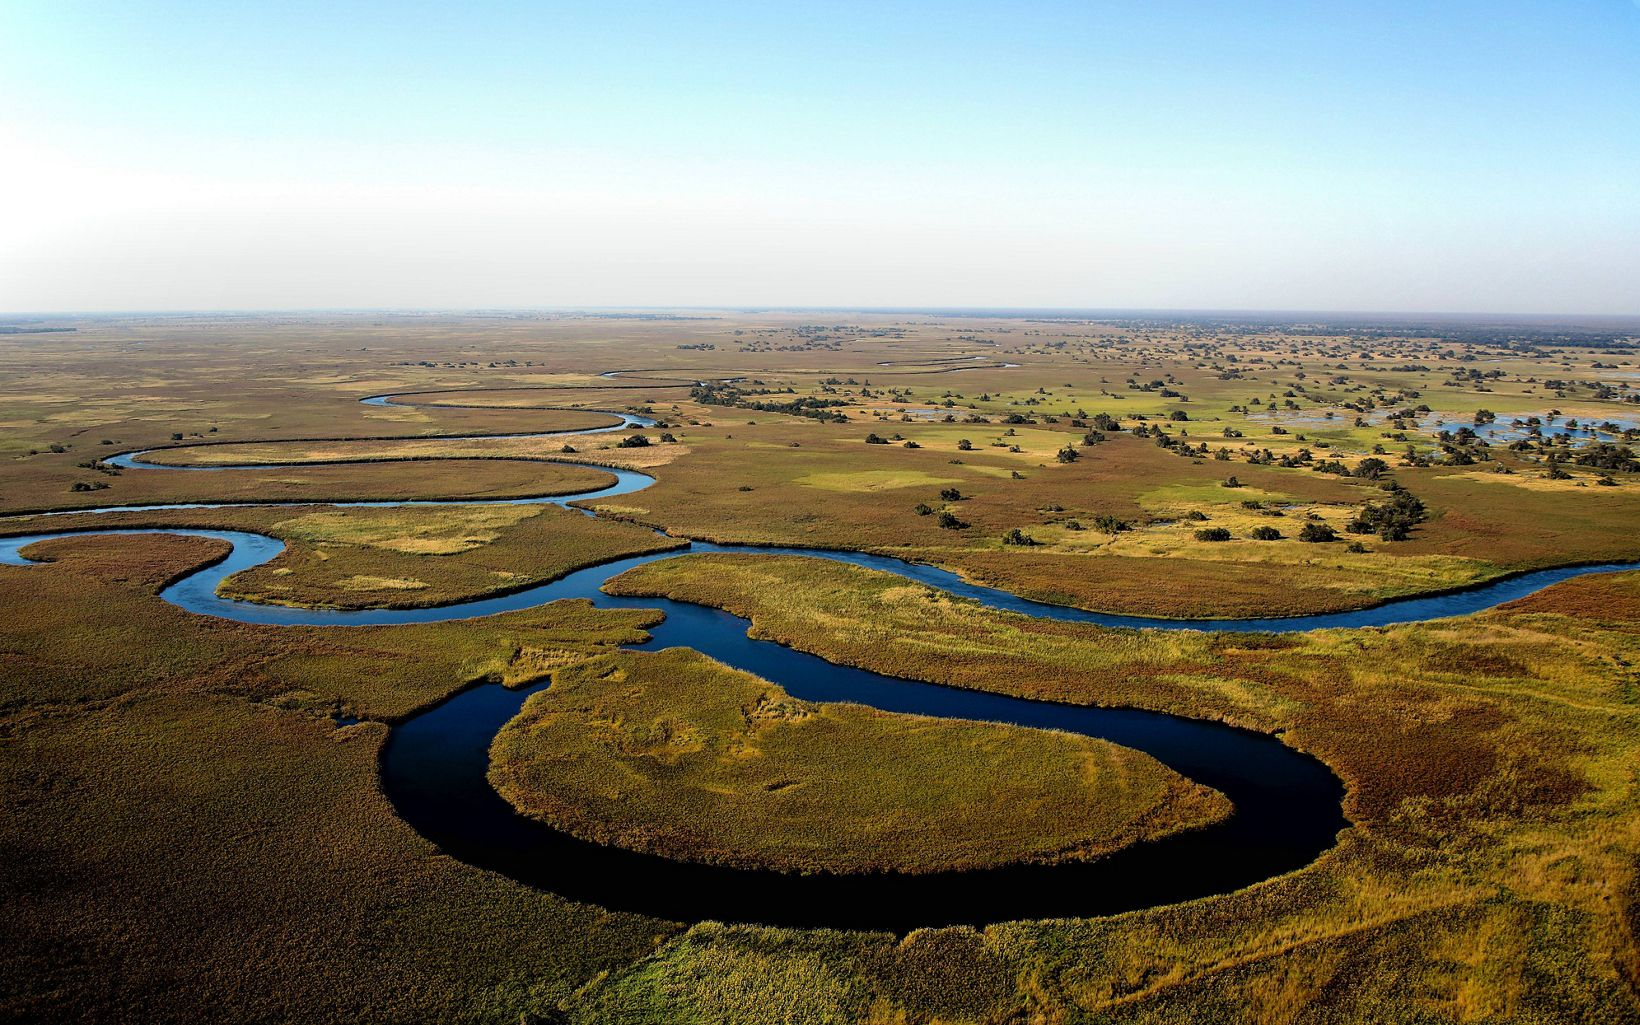 Aerial of the Okavango River in Botswana. TNC is working with partners here to ensure that this breathtaking habitat has enough water as infrastructure projects progress.